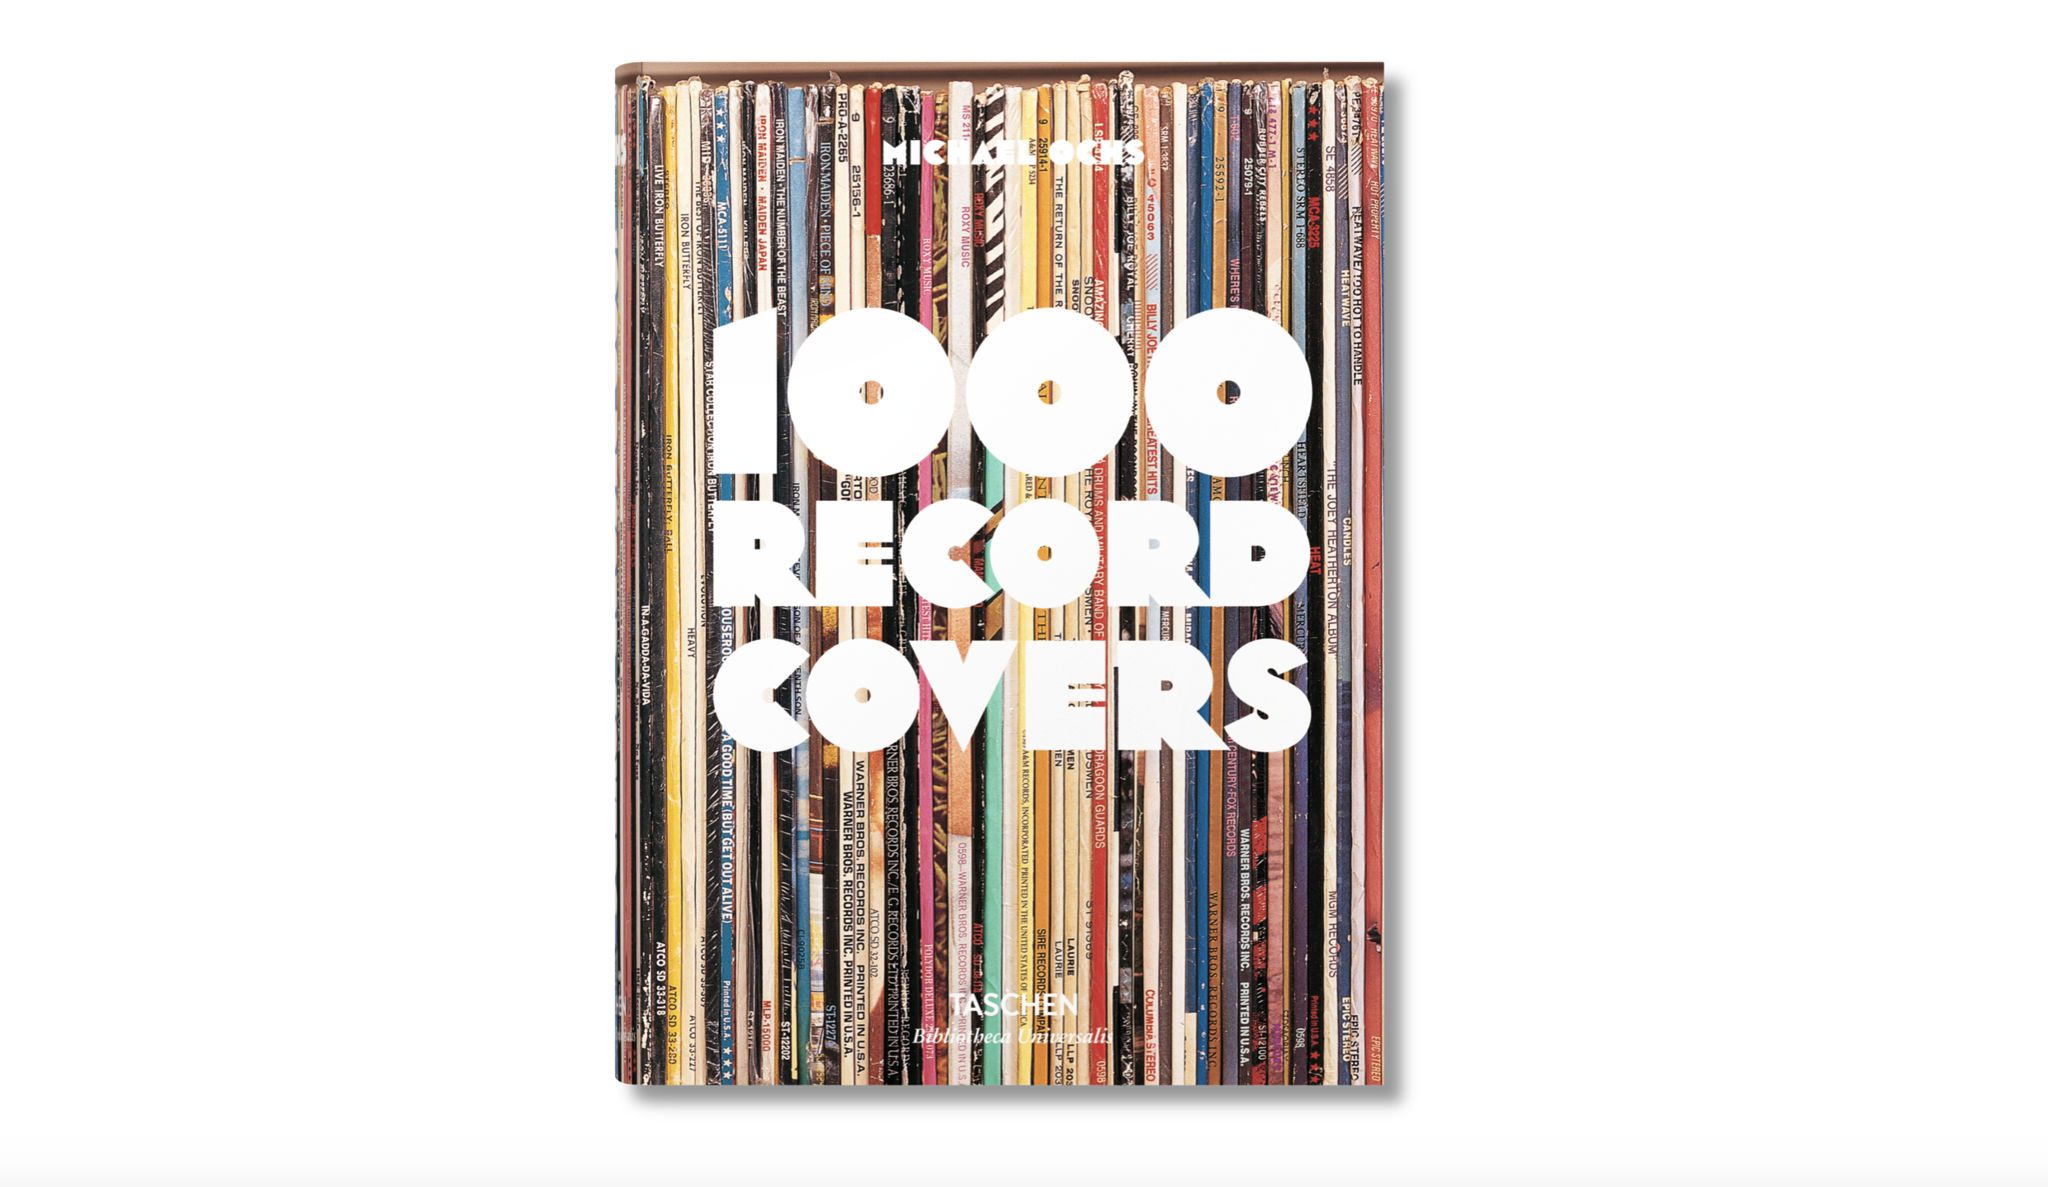 Taschen Record Covers HC